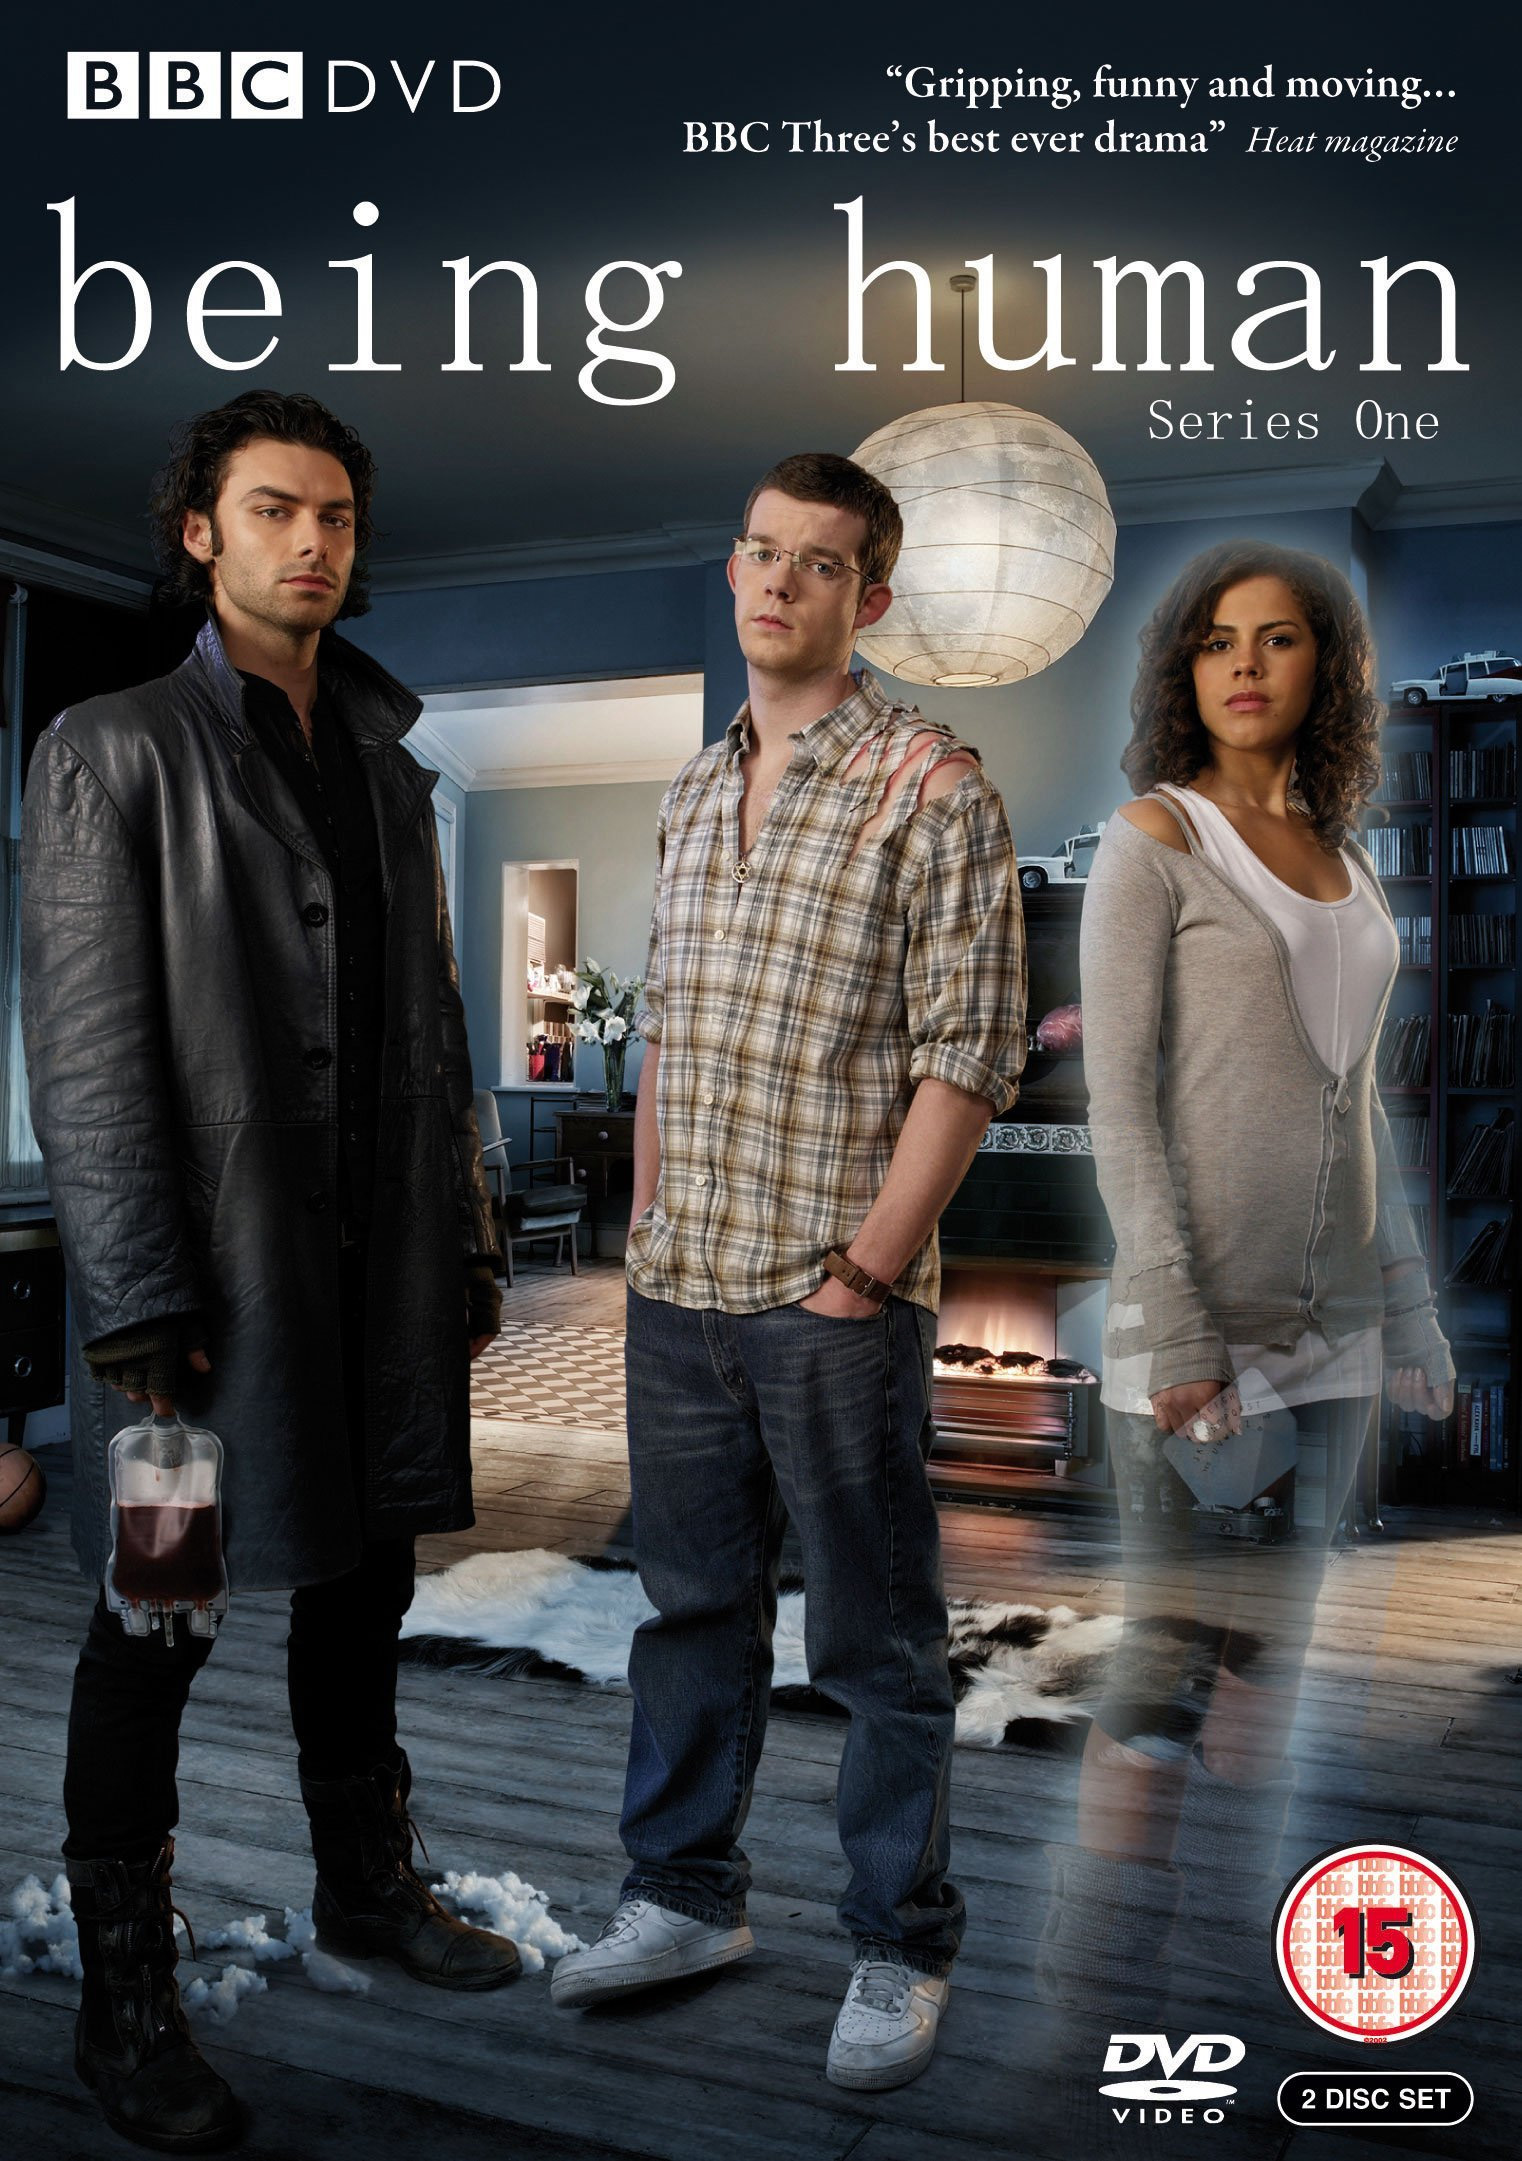 Minor Human Characters in the Television Series/Gallery